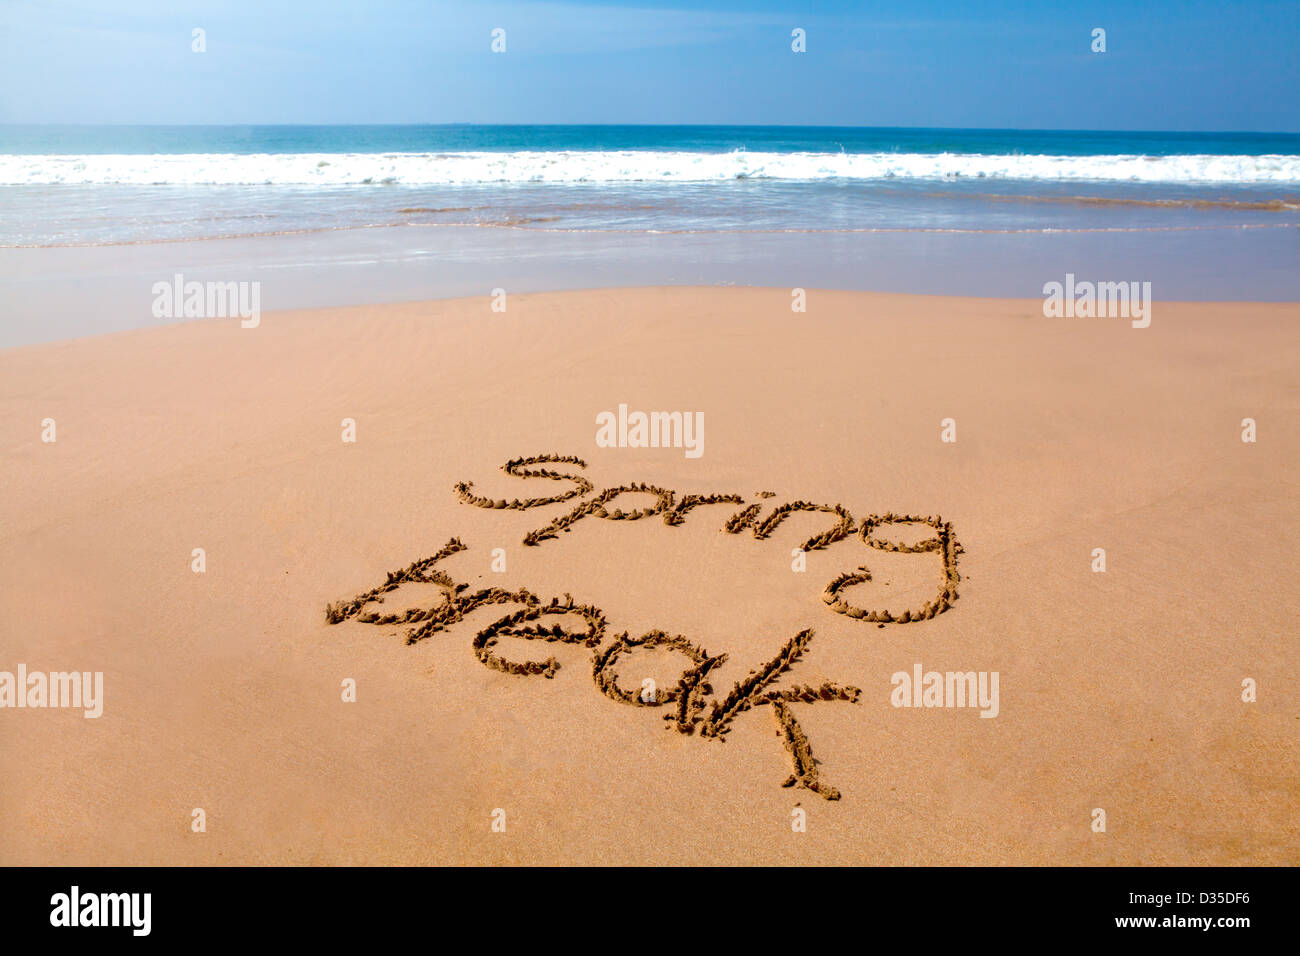 Words spring break written in sand on a tropical beach, with sea in background - Stock Image